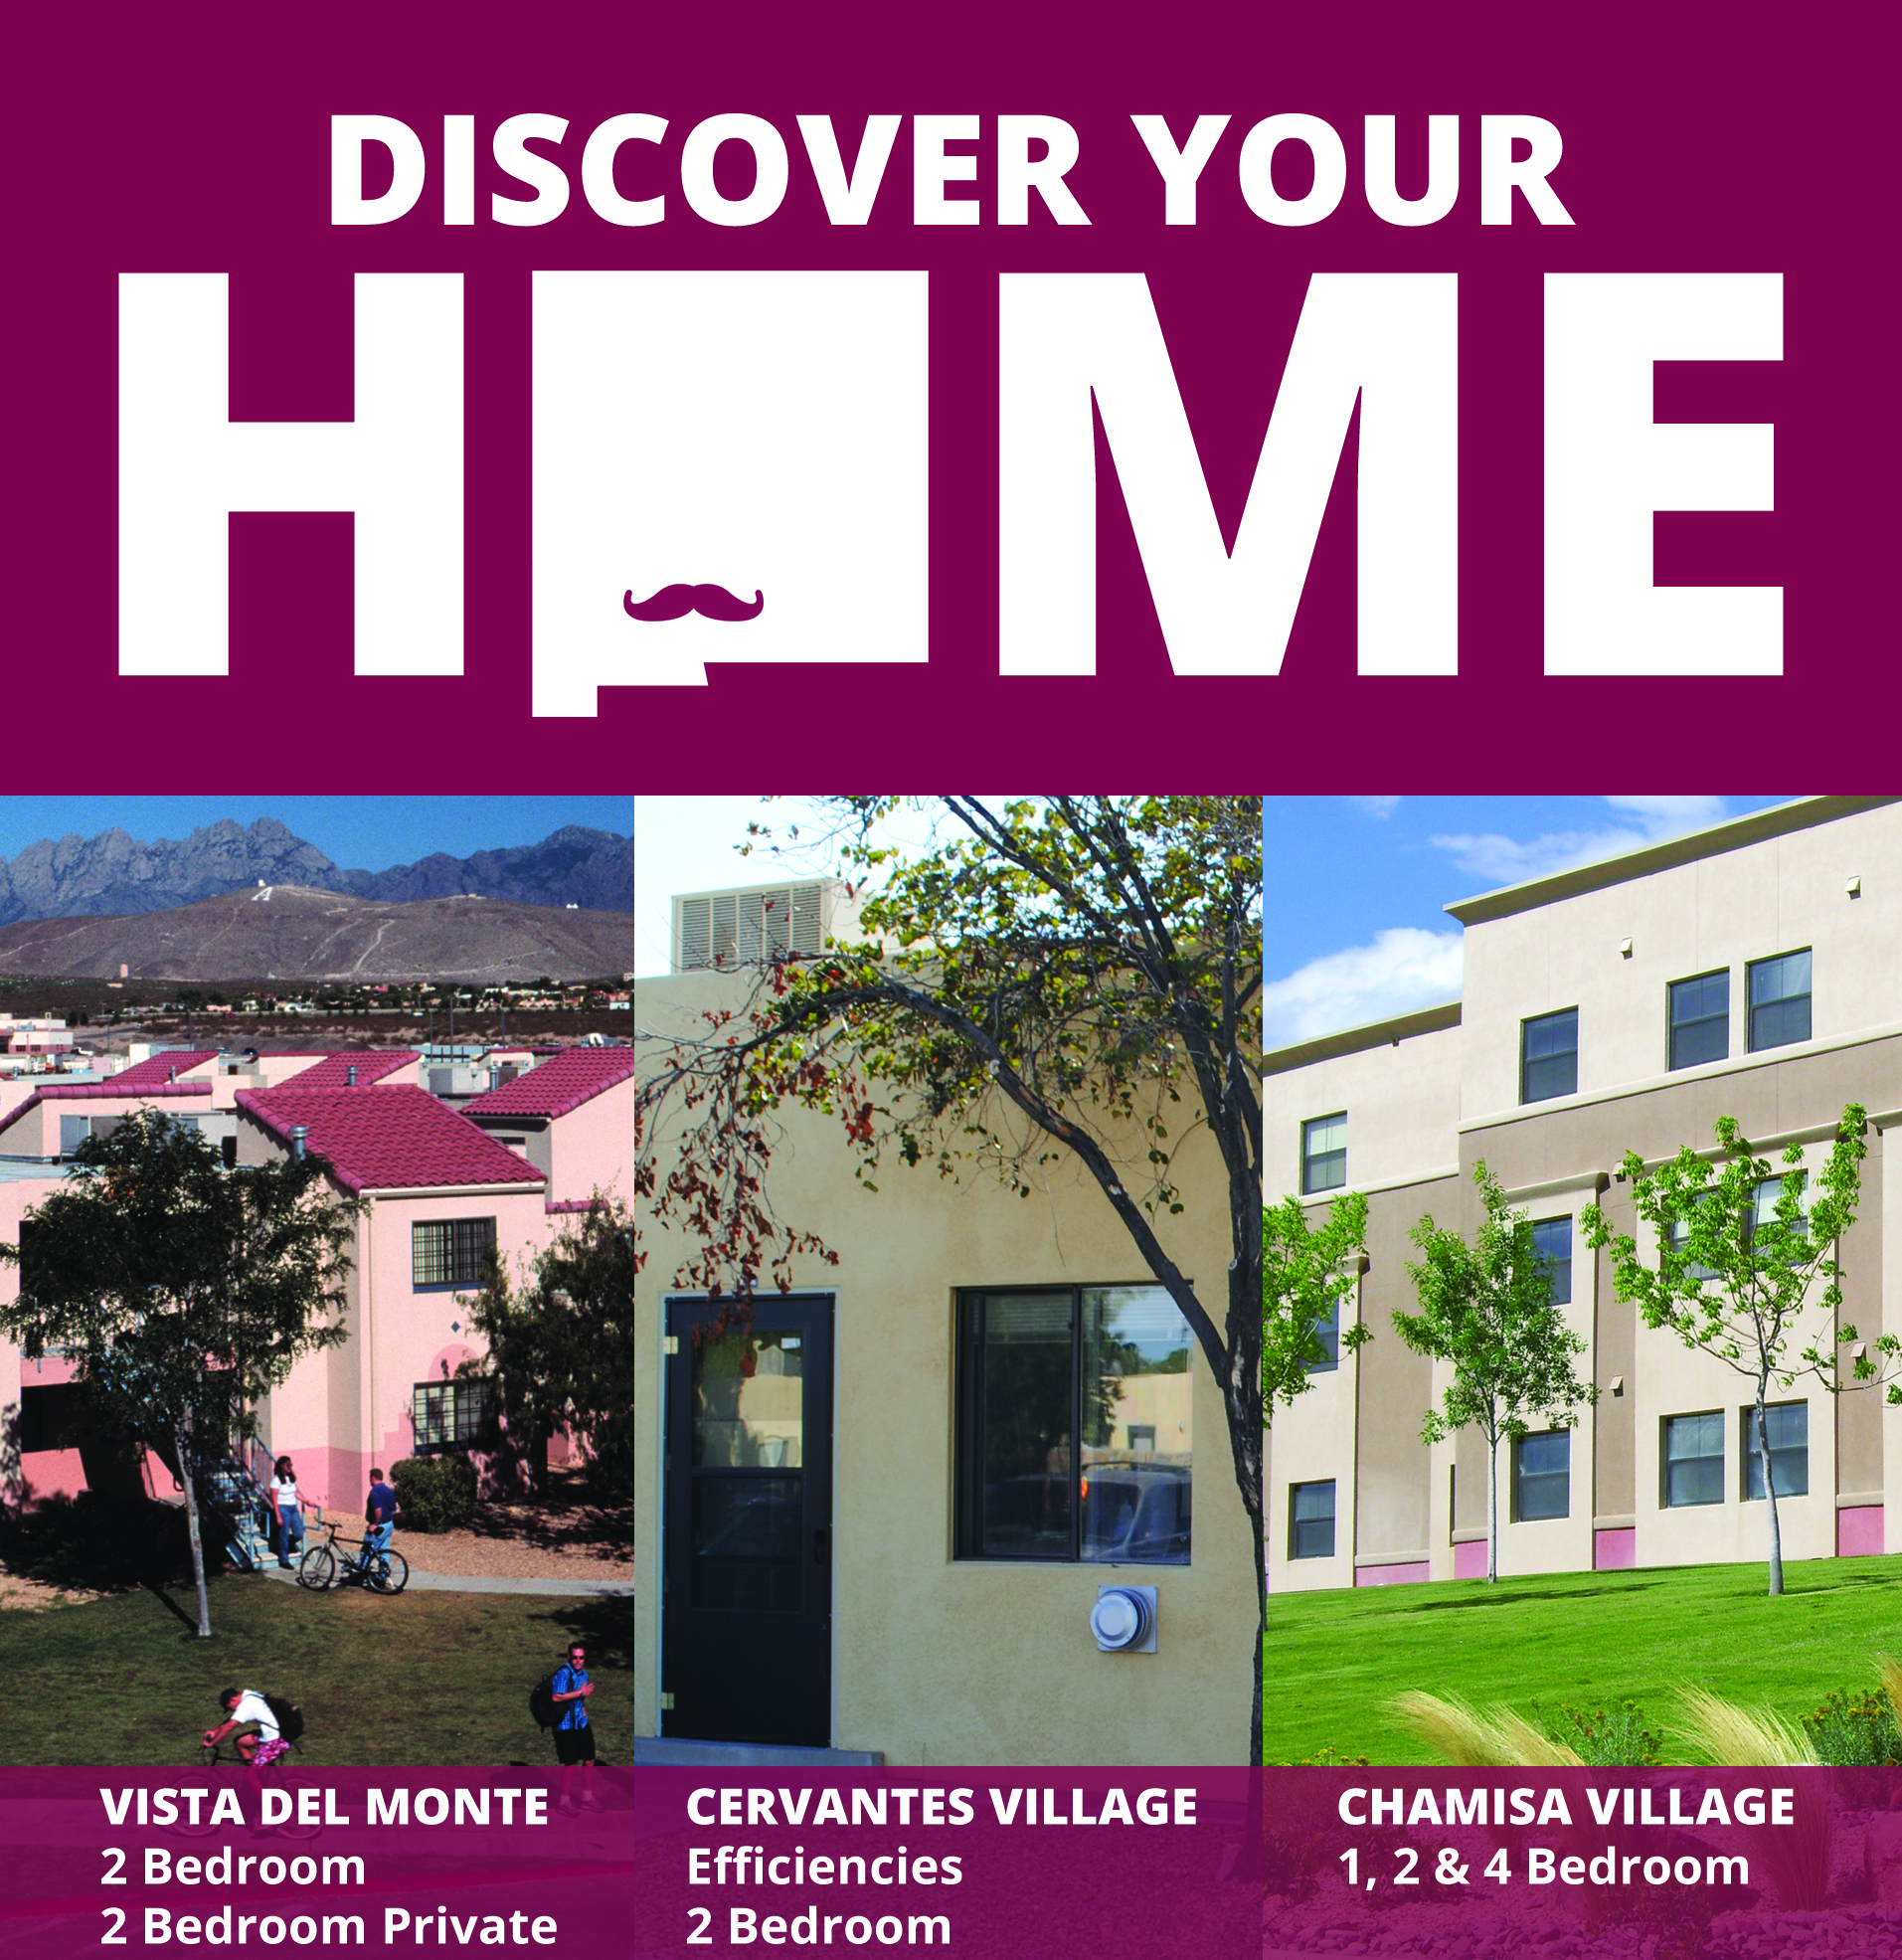 Discover Your Home! Vista Del Monte offers 2 Bedroom Shared & 2 Bedroom Private Options. Cervantes Village offers efficiencies and 2 bedroom apartments. Chamisa Village offers 1, 2 and 4 bedroom options.